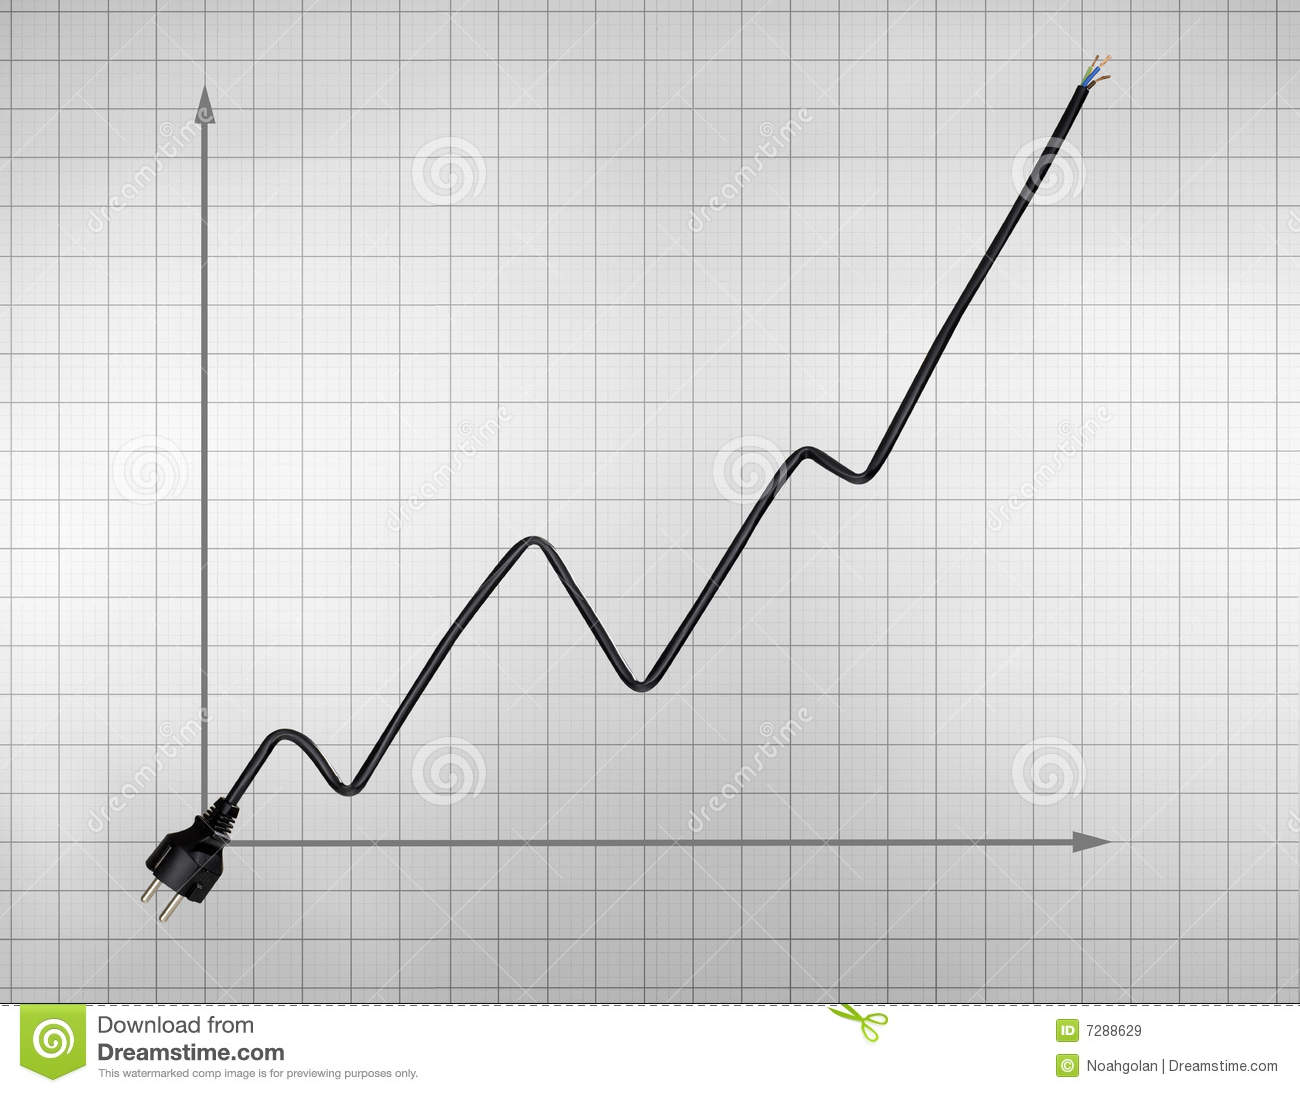 Royalty Free Stock Images: Energy chart